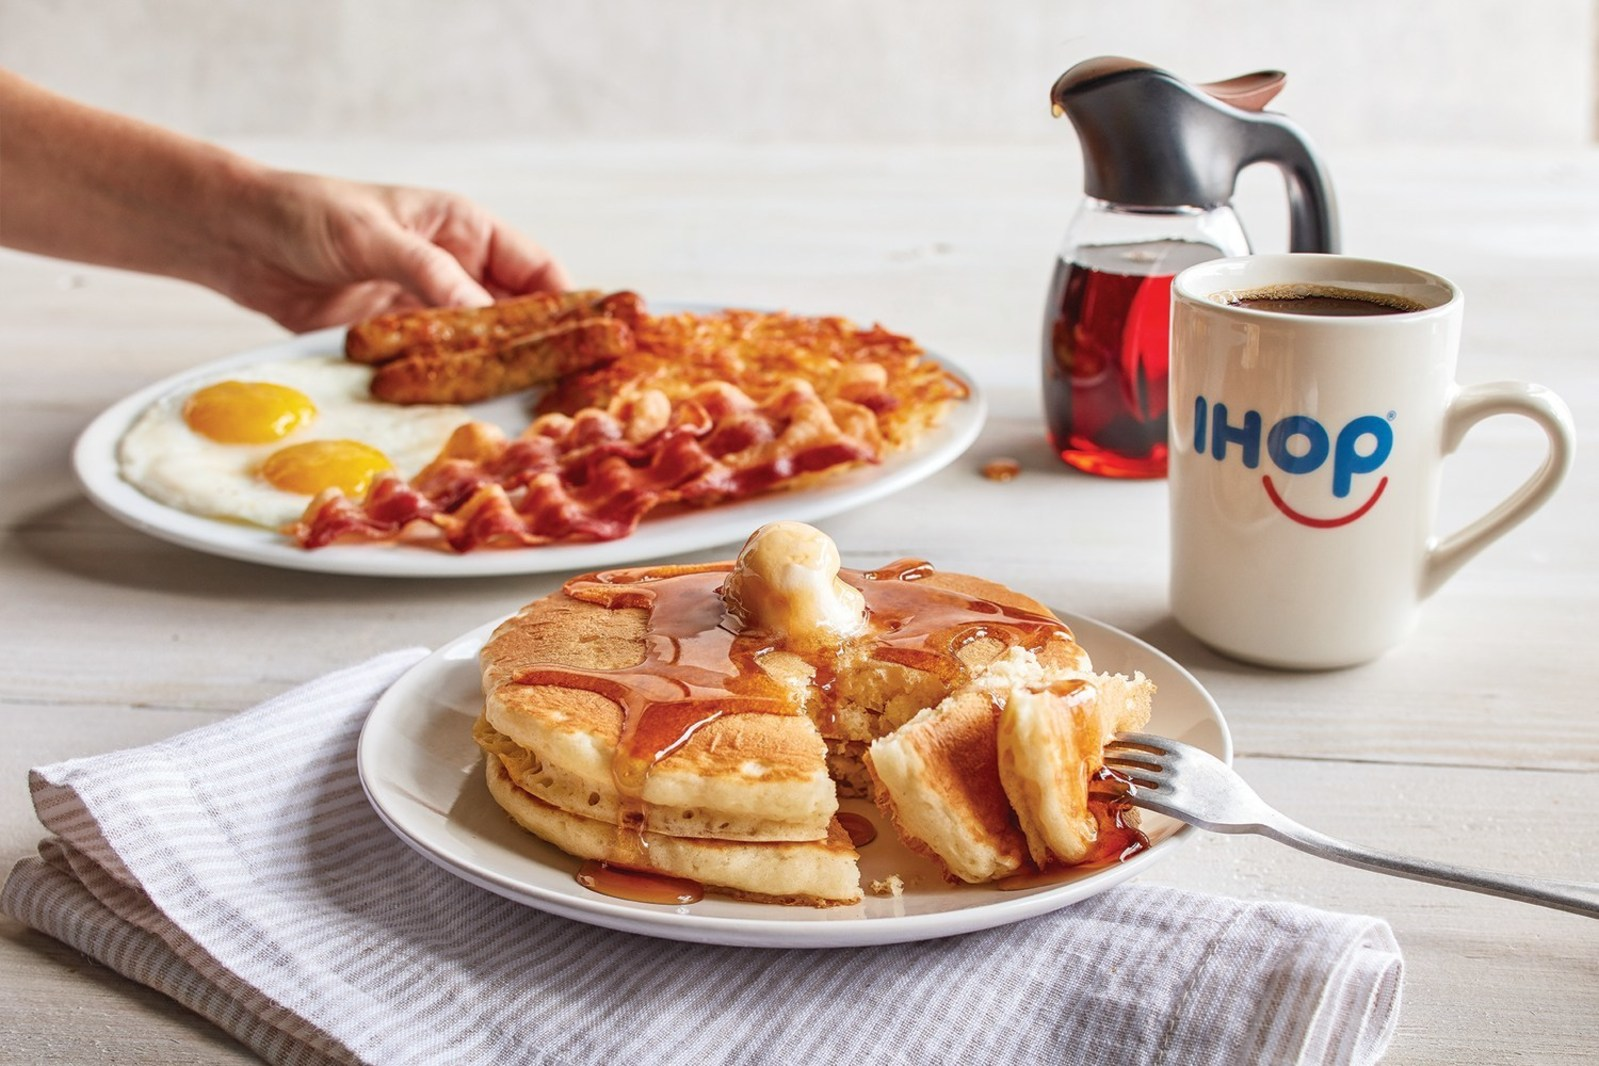 IHOP Restaurants All You Can Eat Pancakes